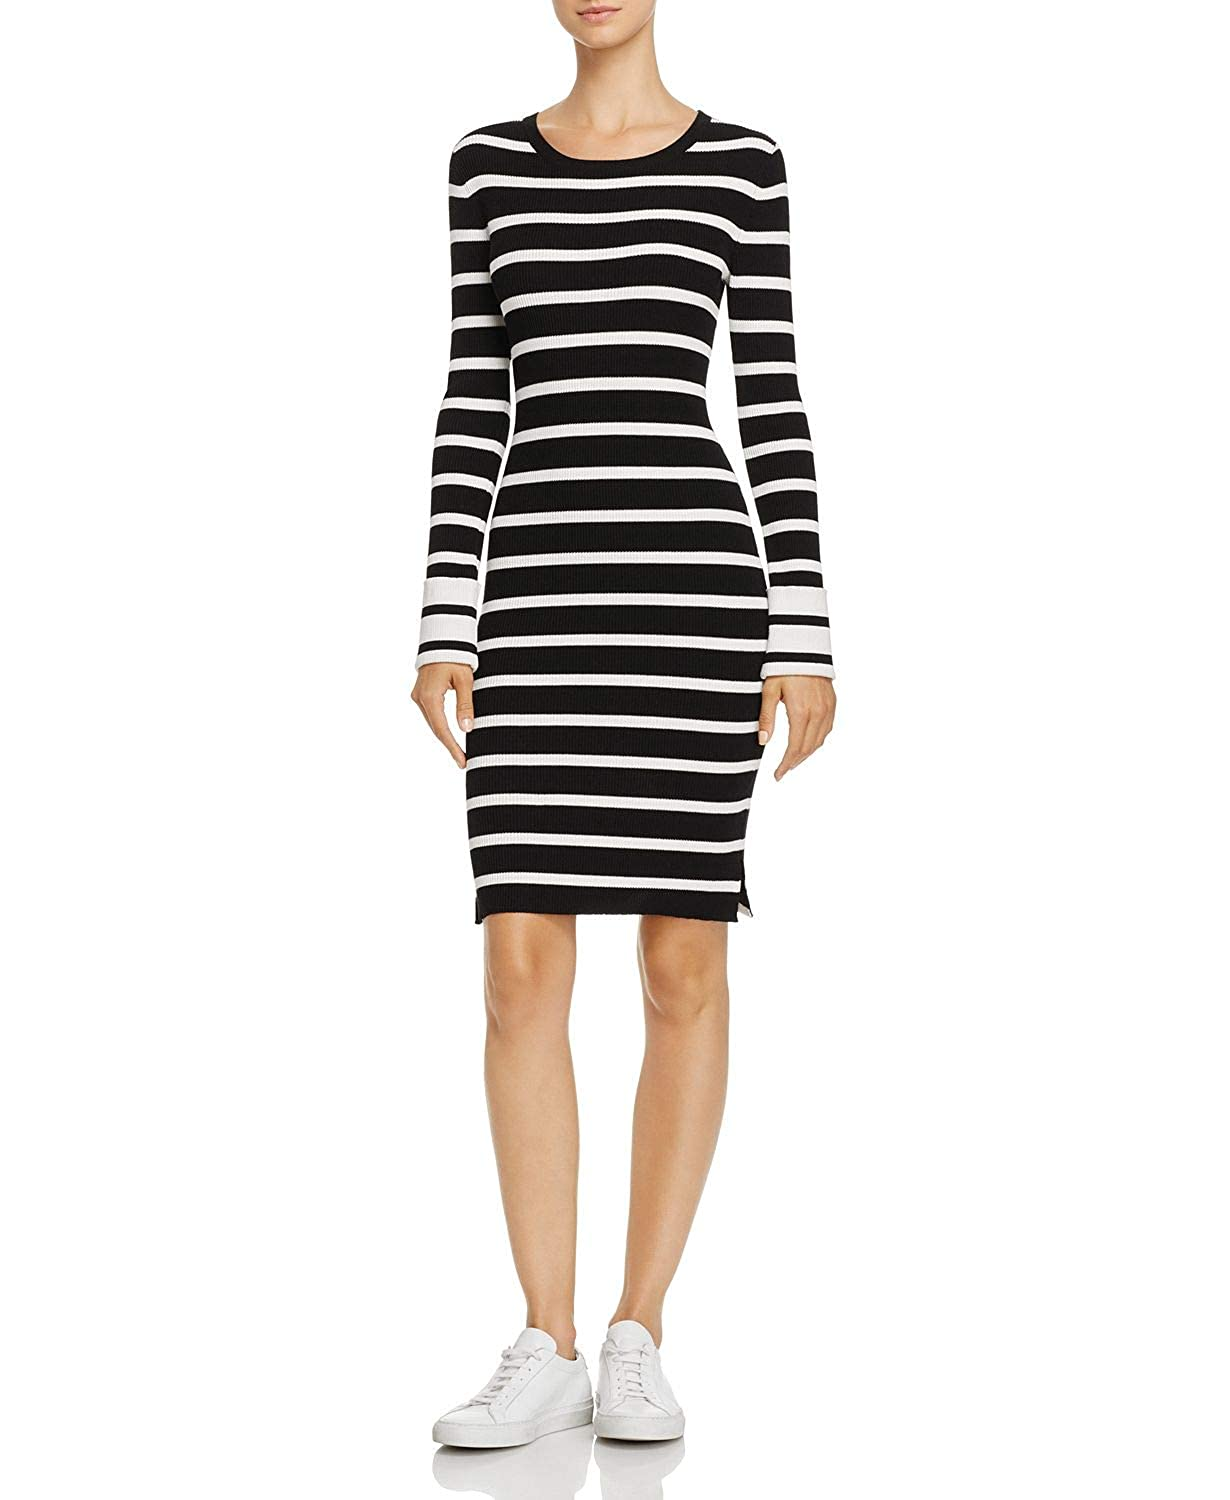 Black//Eggshell Theory Womens Prosecco Striped Crewneck Fitted Sheath Dress